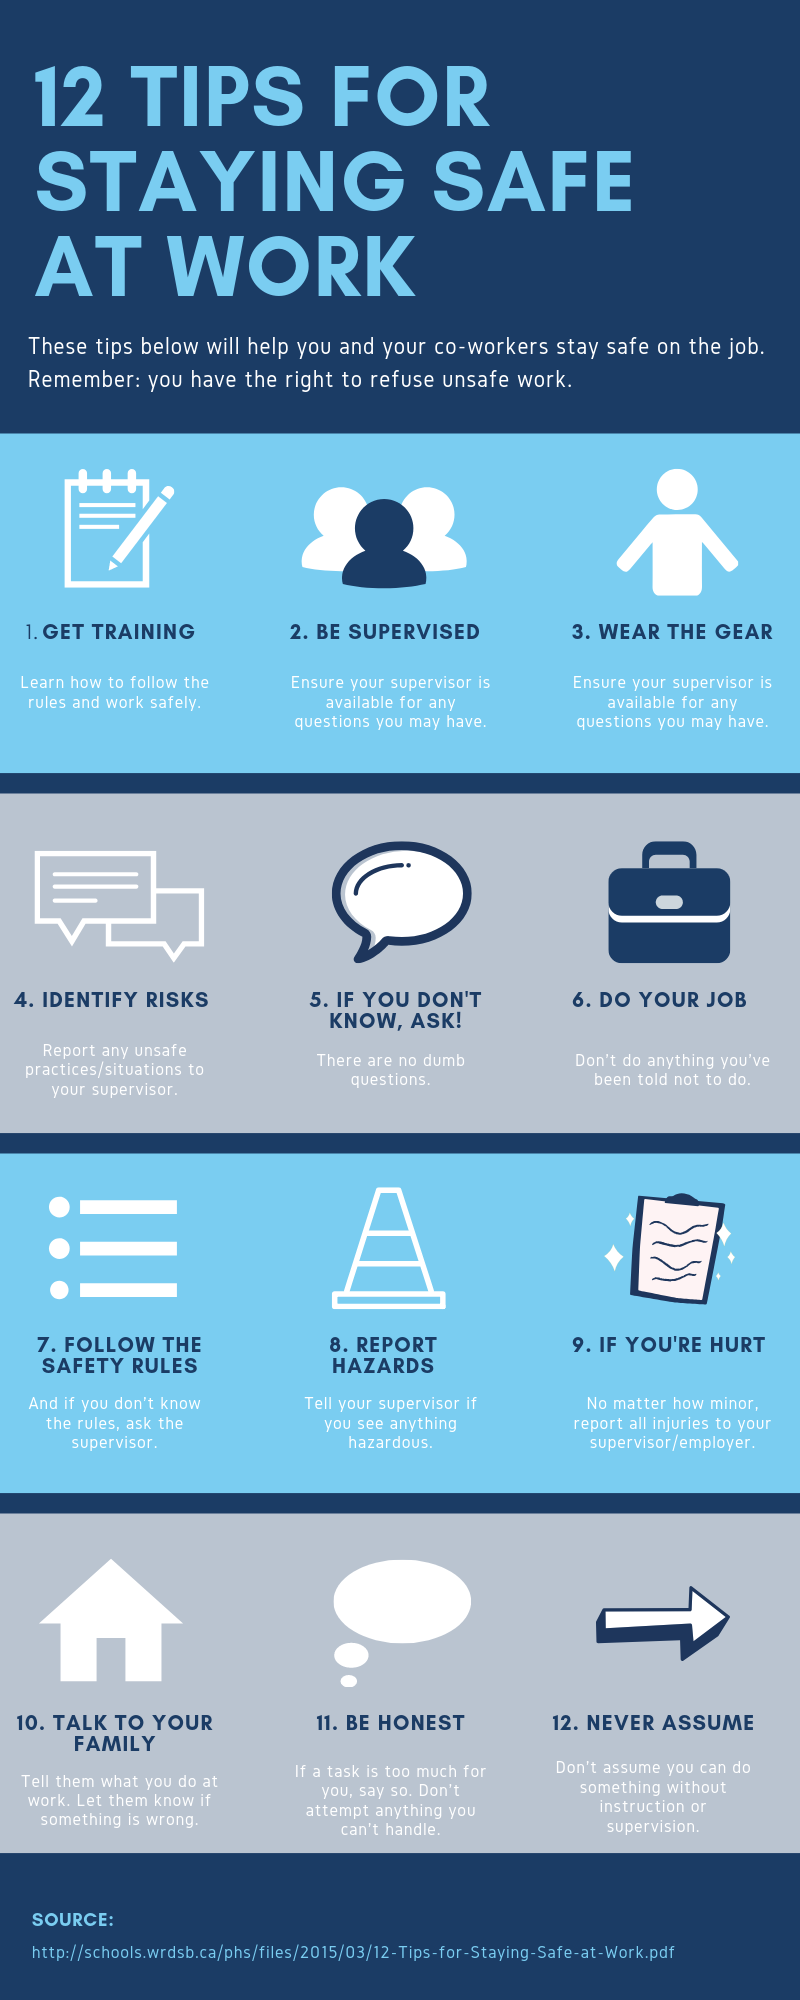 12 Tips for Staying Safe at Work (3)